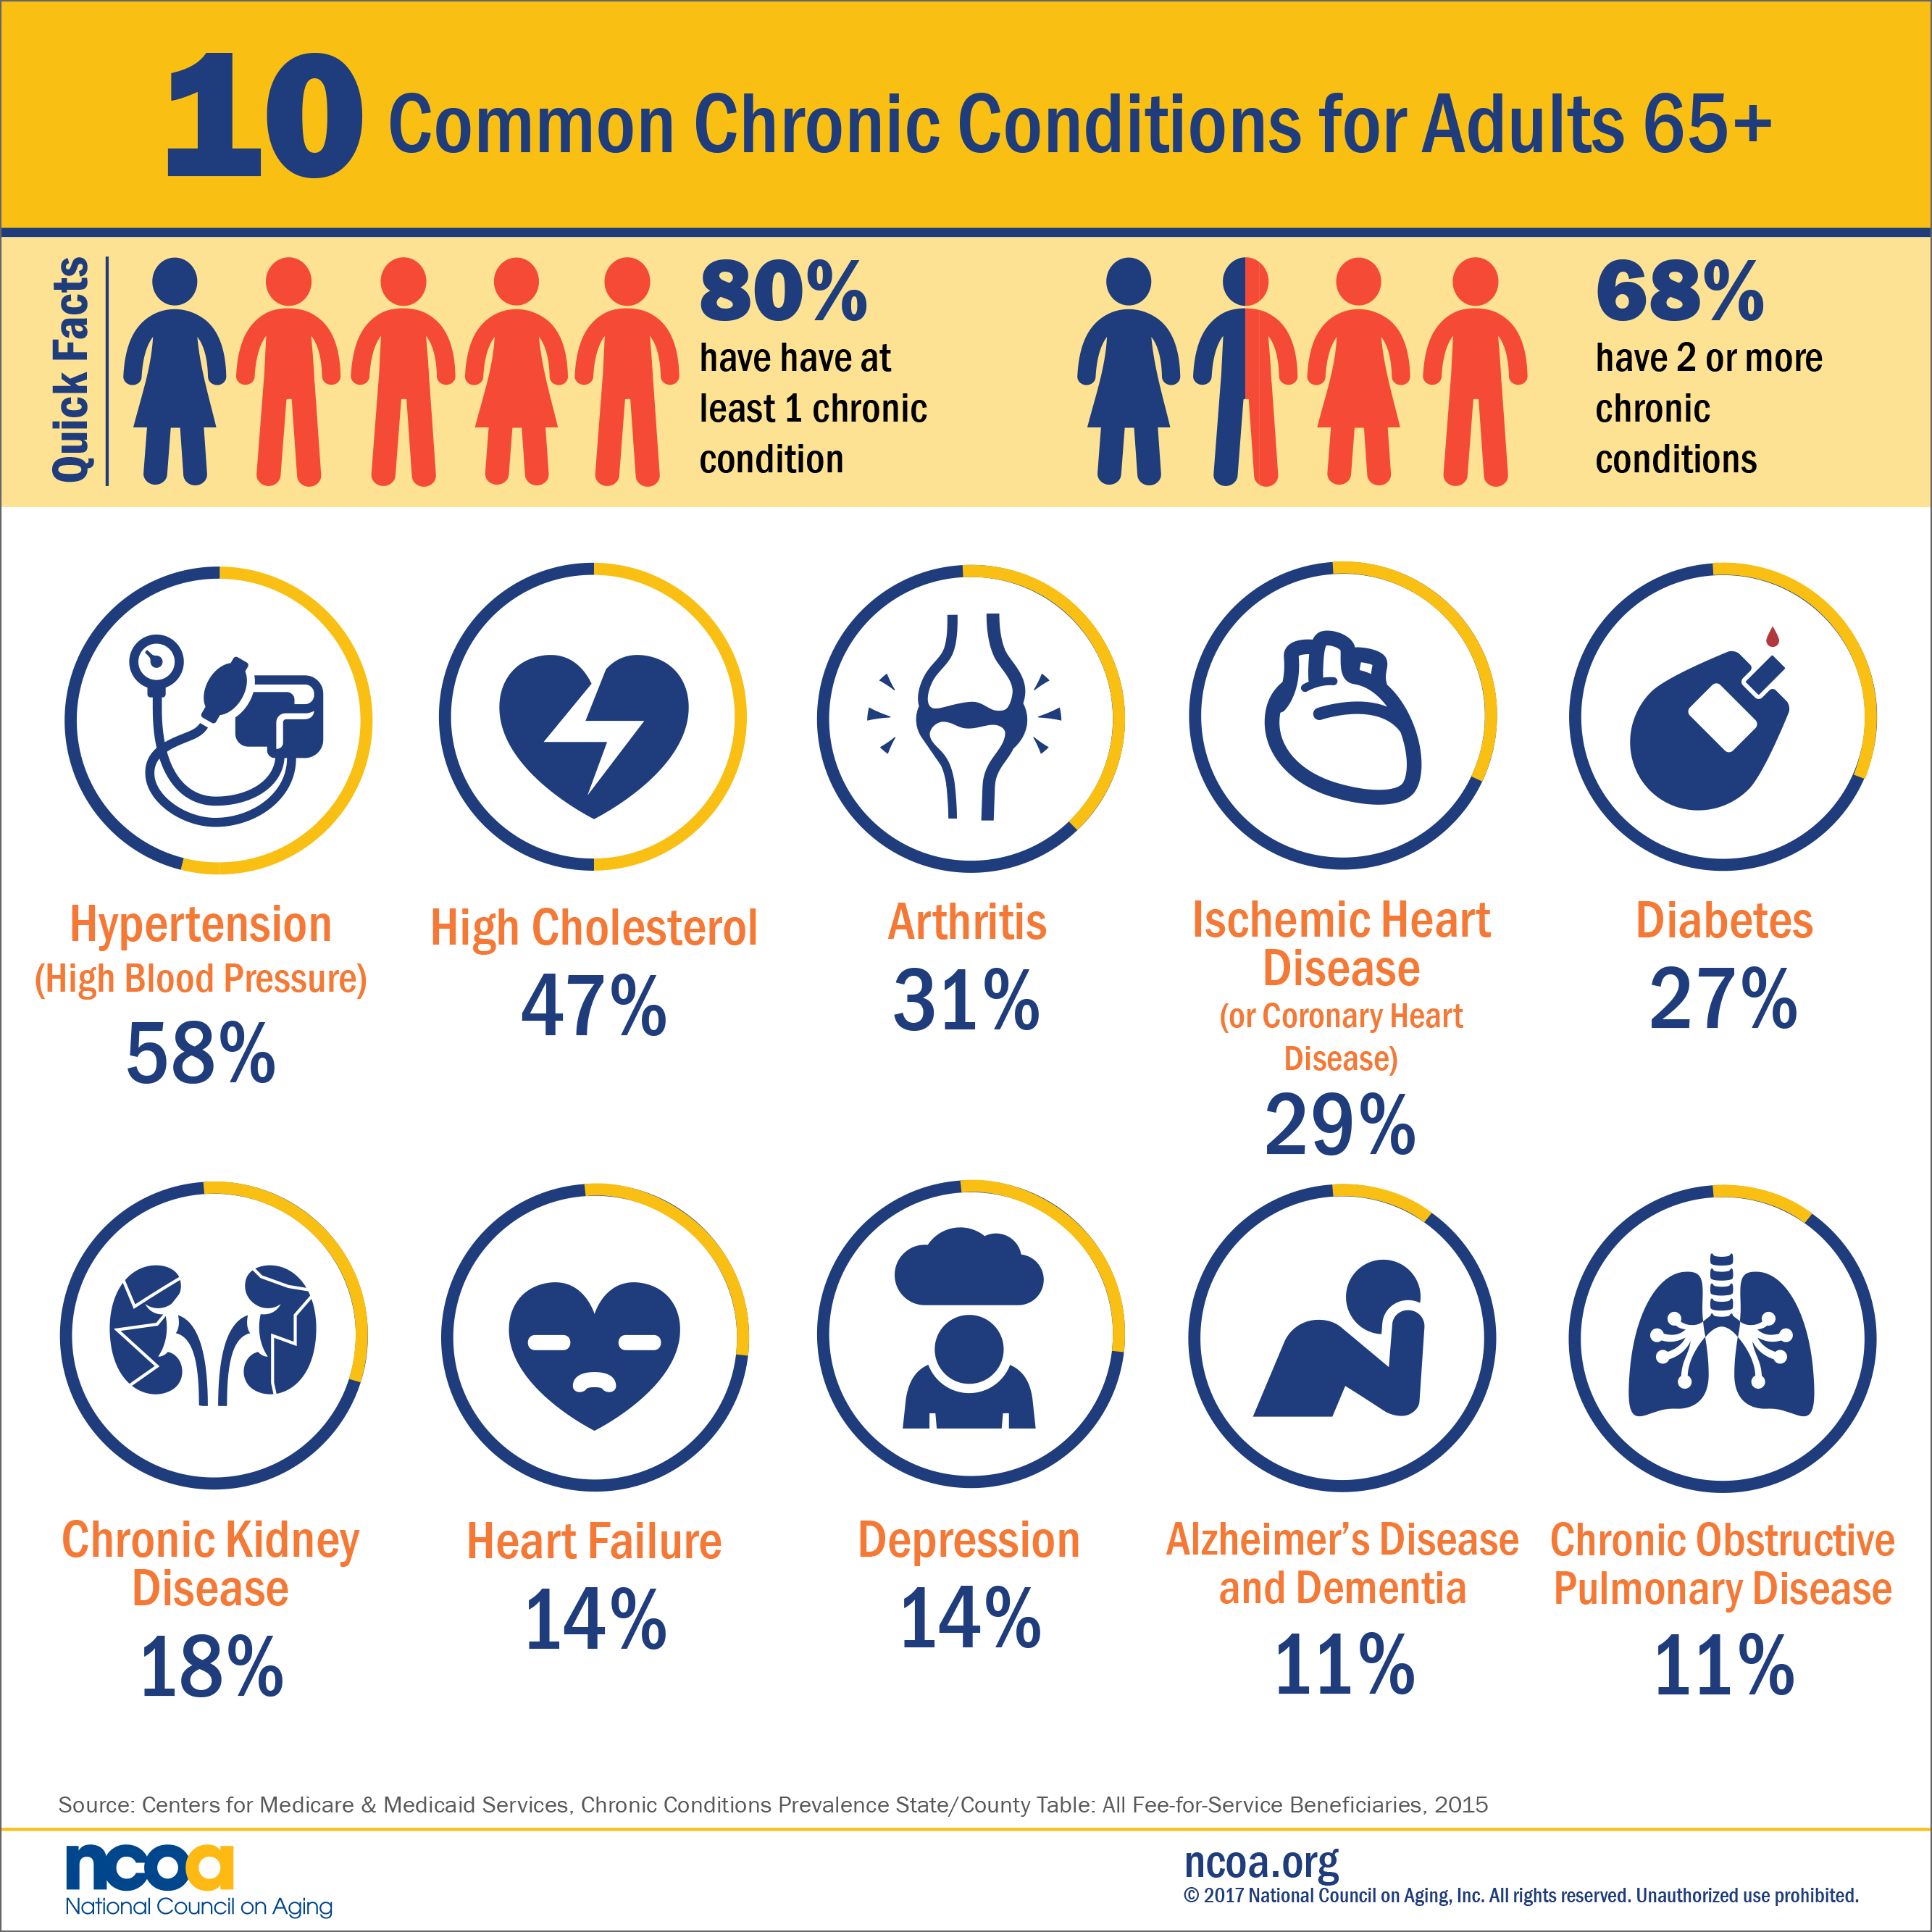 diagram showing percentages of Americans 65+ with chronic disease saying that 80% have at least 1, 68% have 2 or more, and the most common are hypertension, high cholesterol, and arthritis